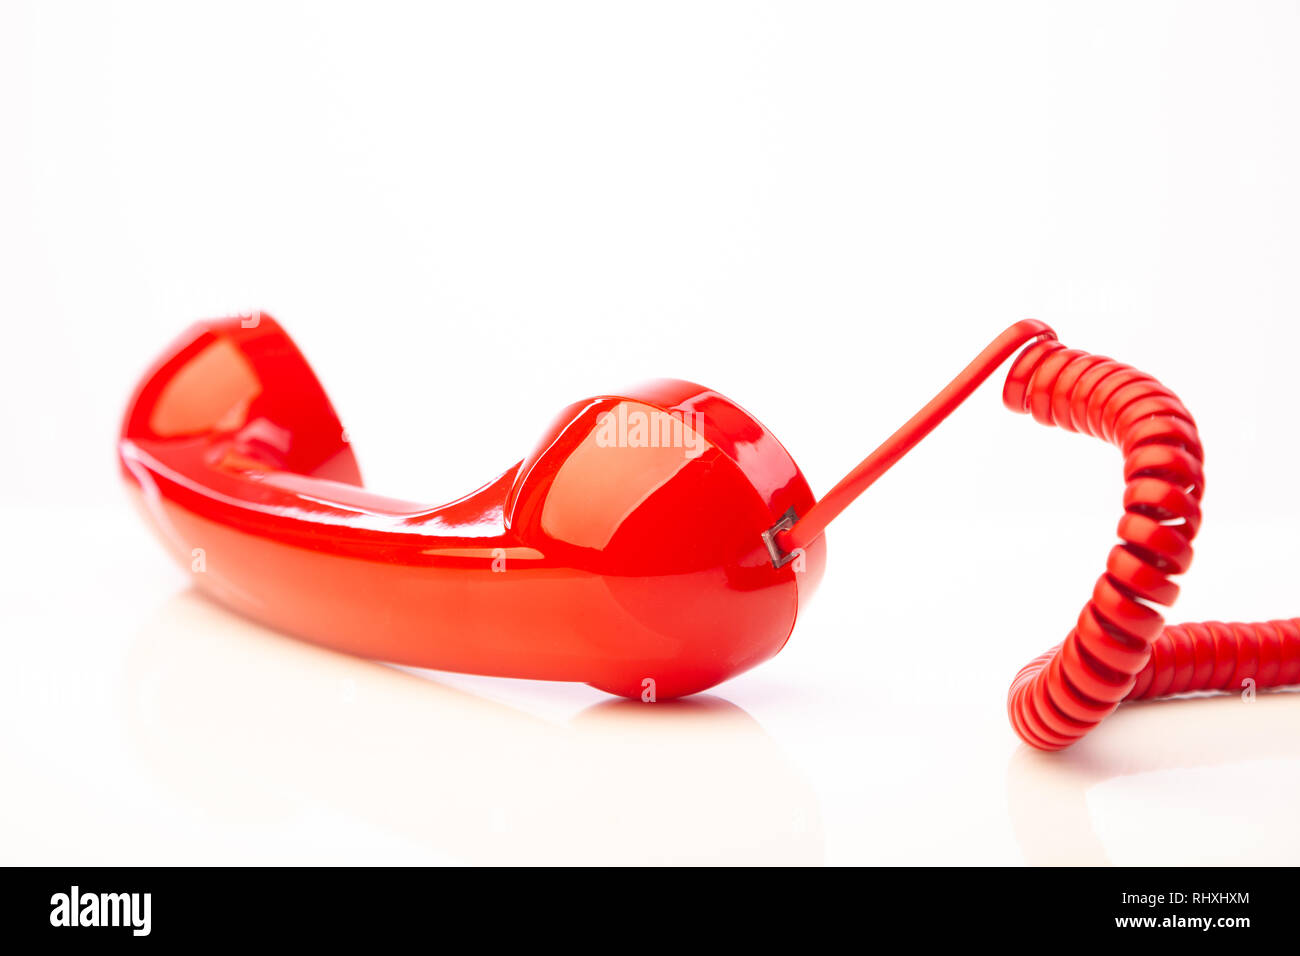 A red retro telephone handset lying on it's side against a white background. - Stock Image